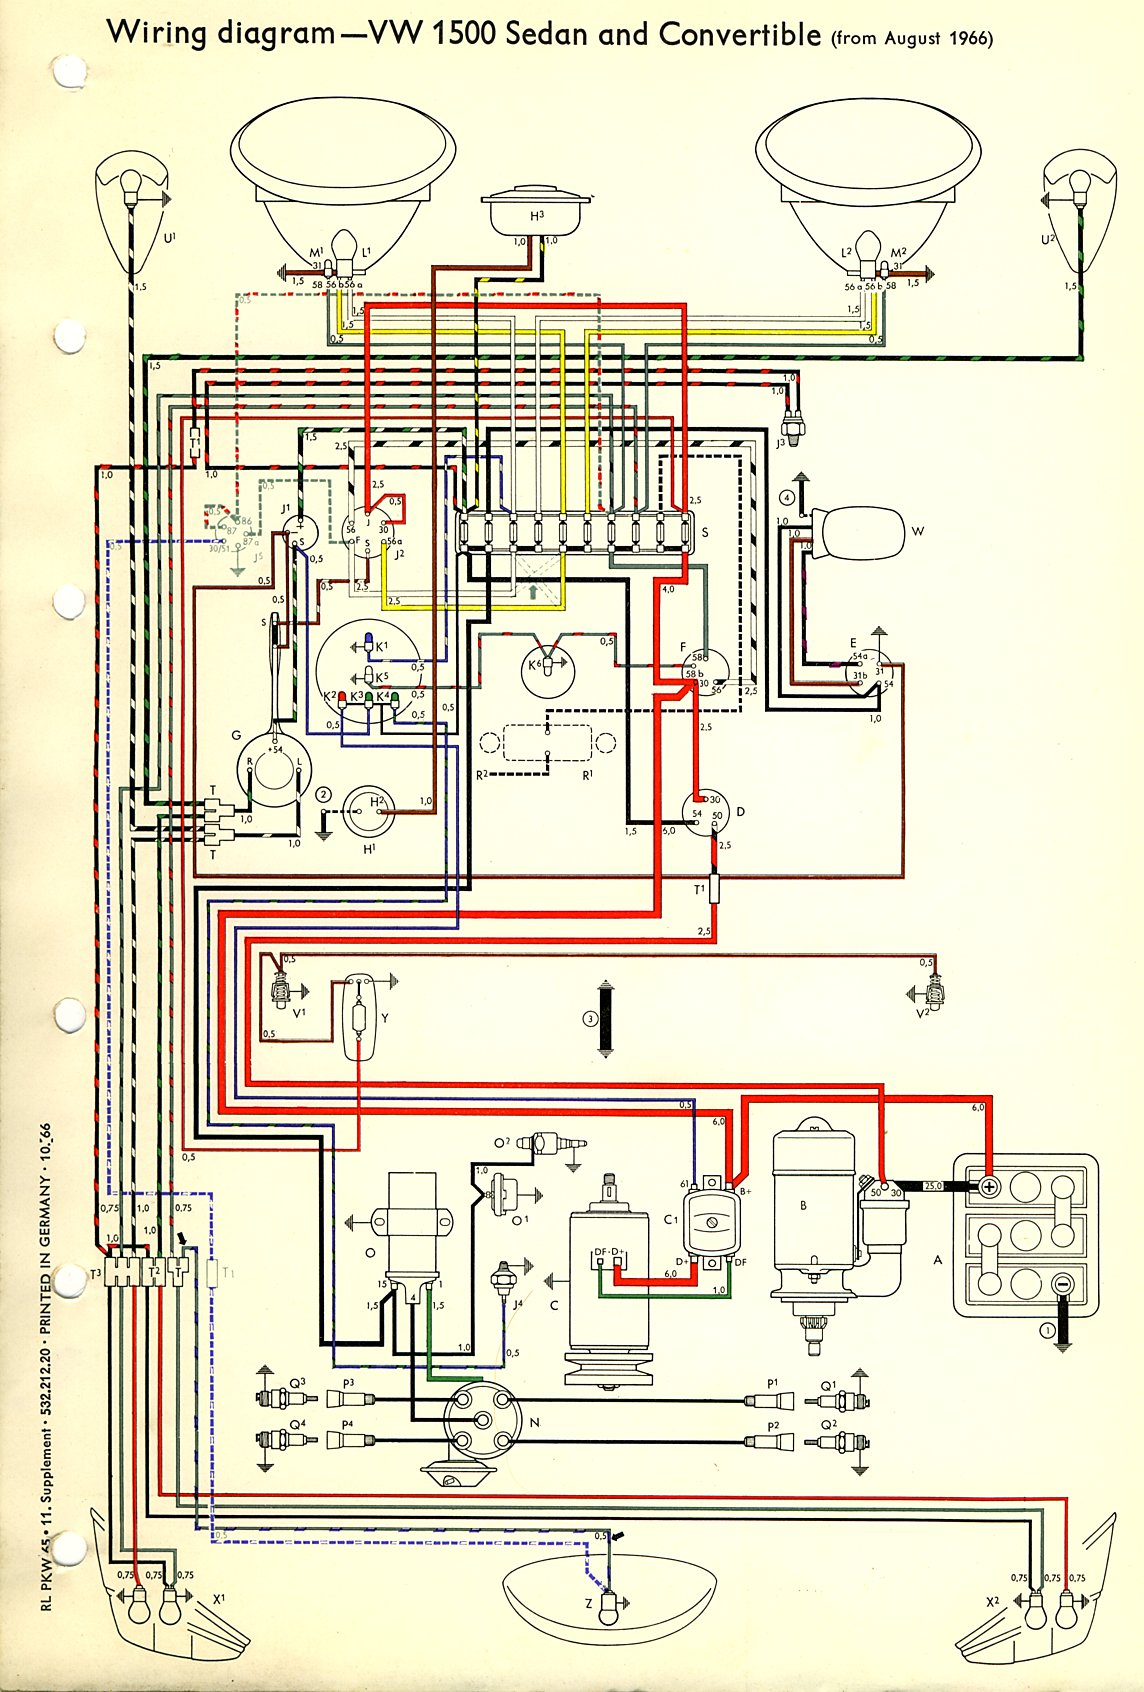 thesamba com type 1 wiring diagrams 73 vw beetle wiring diagram 71 super beetle wiring diagram #3